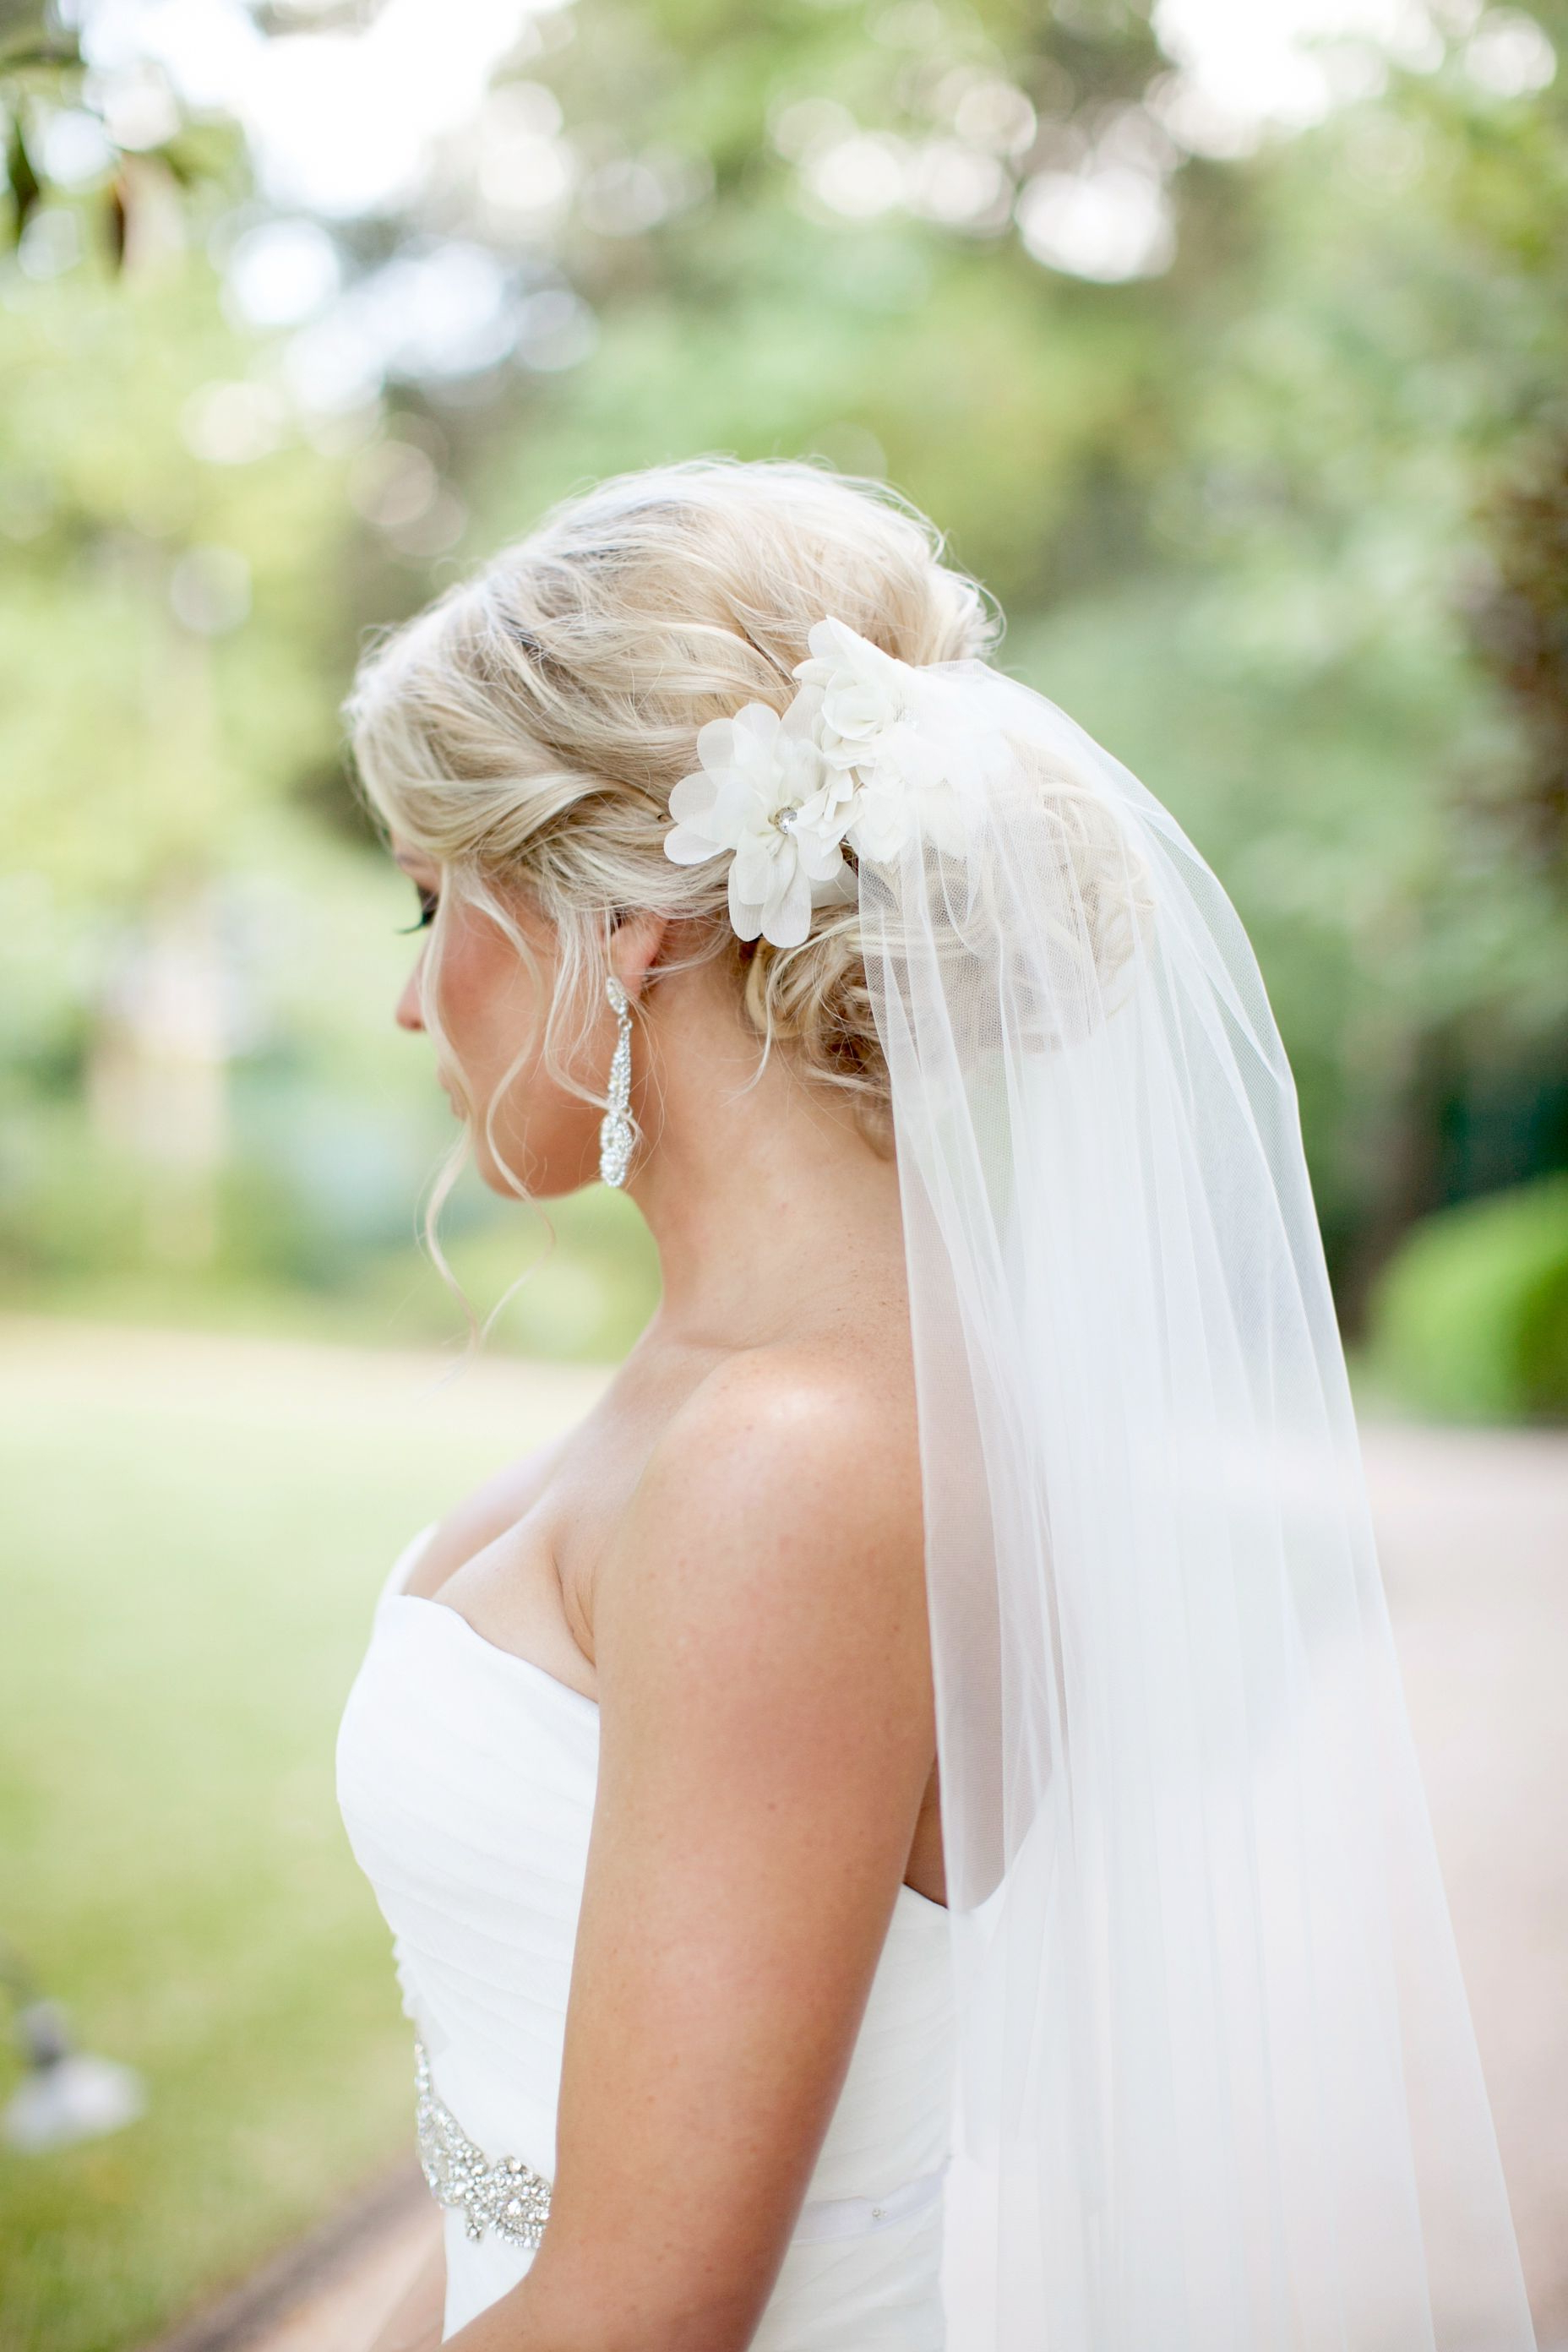 Favorite Tender Bridal Hairstyles With A Veil For Bridal Updo With White Flowers … (View 4 of 20)